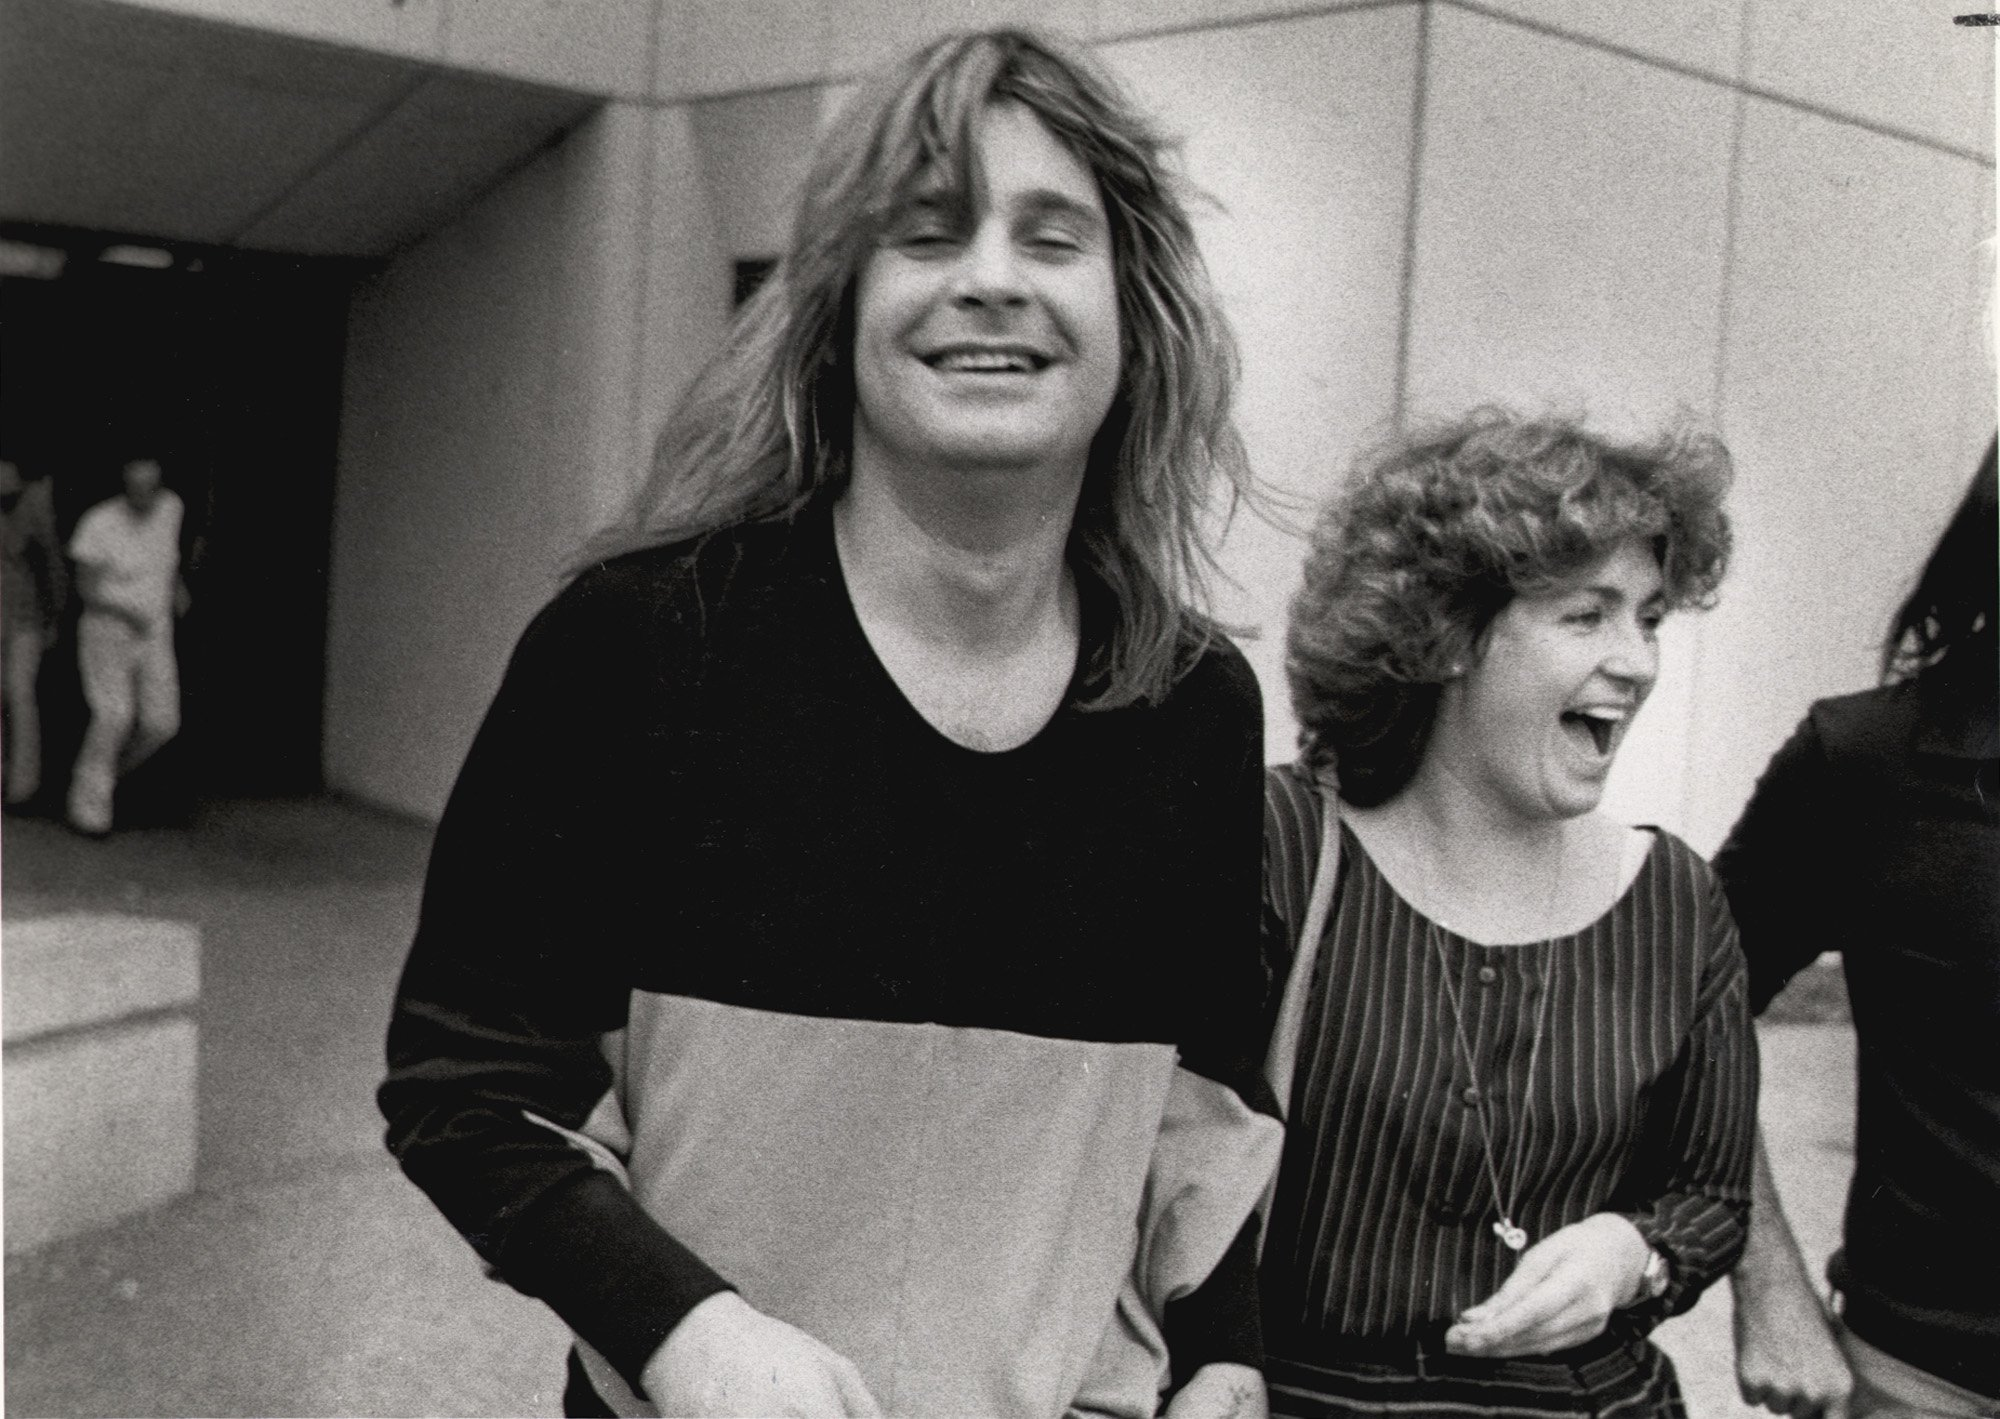 Feb. 19, 1982 - San Antonio, Texas, U.S. - OZZY OSBOURNE and his manager, SHARON ARDEN (now his wife SHARON OSBOURNE), leave the Bexar County Adult Detention Center, after he was arrested for urinating on the Alamo Cenotaph., Image: 125086896, License: Rights-managed, Restrictions: * San Antonio Newspapers Rights OUT *, Model Release: no, Credit line: Profimedia, Zuma Press - Archives